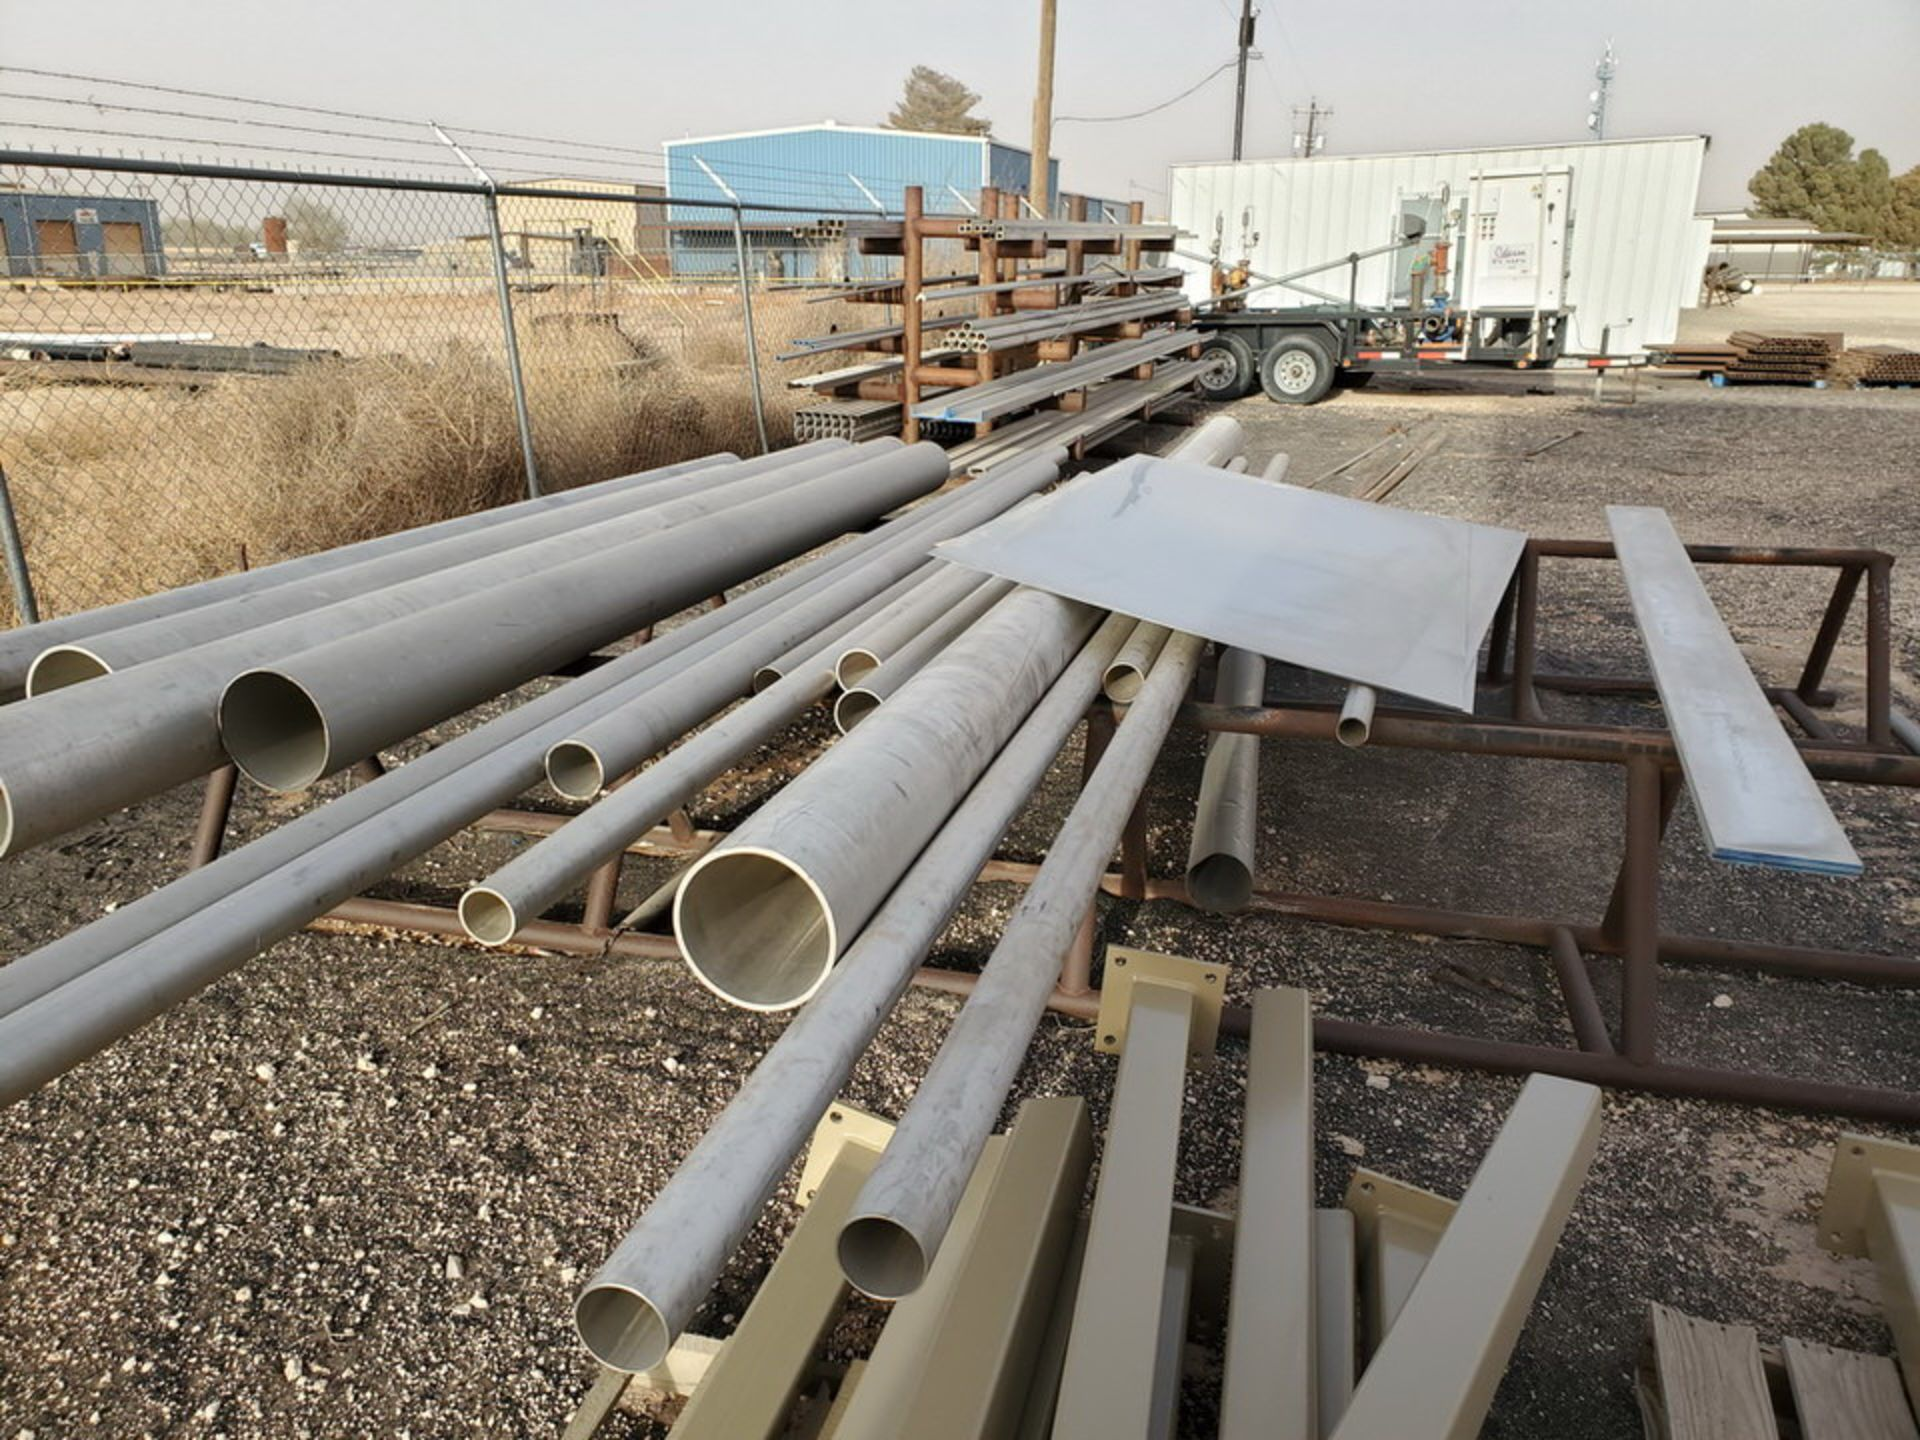 Assorted Matl. To Include But Not Limited To: S/S Flat Bar, Pipe & Sheets (Rack Excluded) - Image 19 of 22